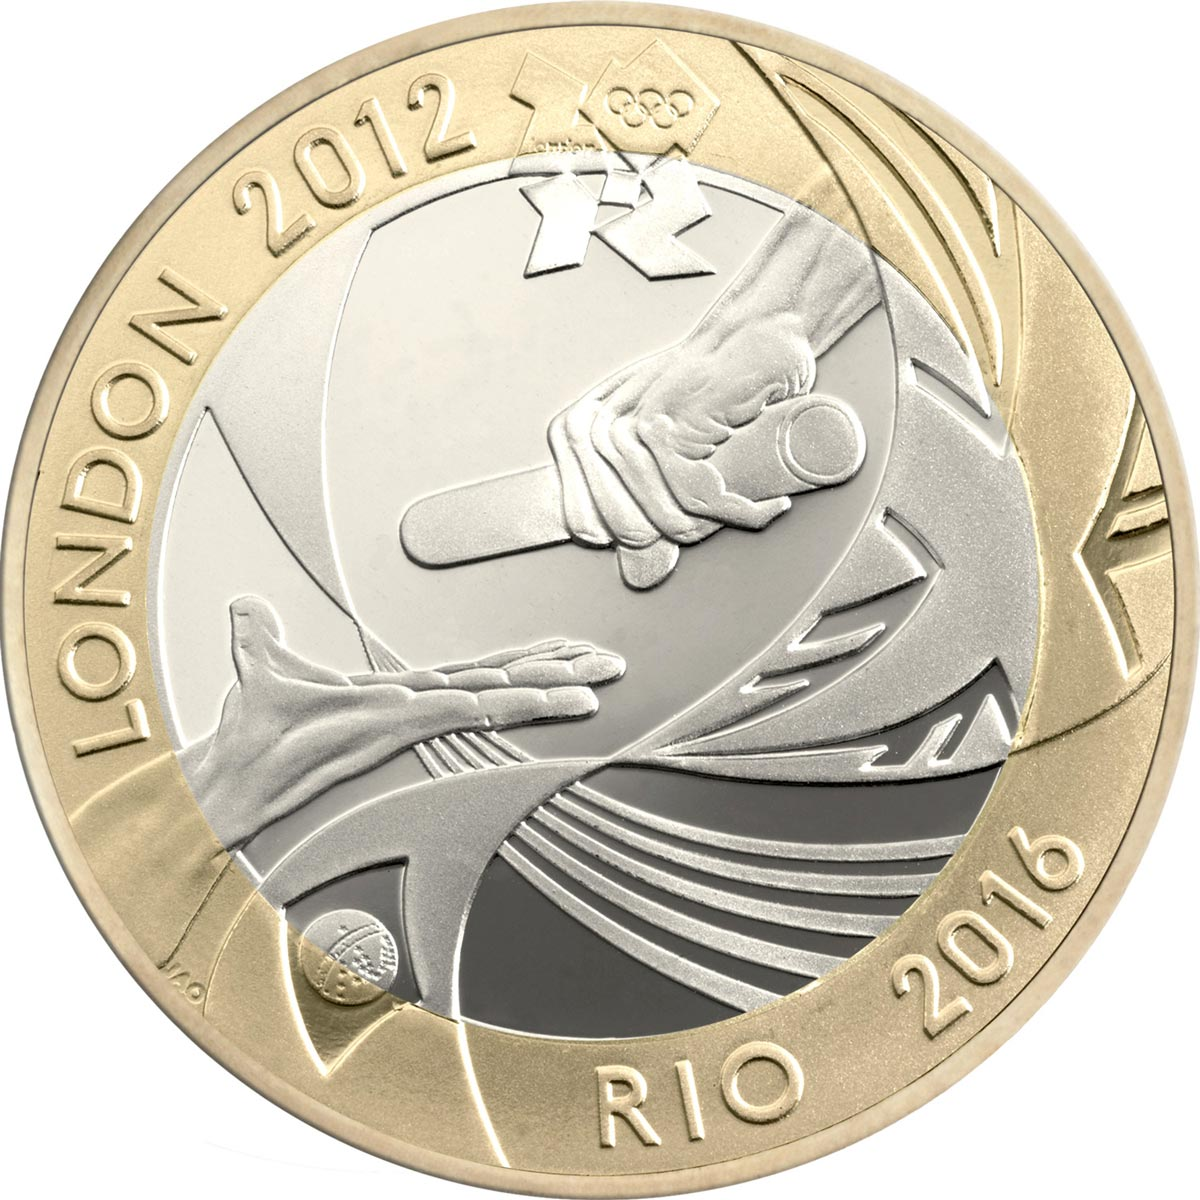 Image of 2 pounds coin - Handover to Rio | United Kingdom 2012.  The Bimetal: CuNi, nordic gold coin is of Proof, BU, UNC quality.